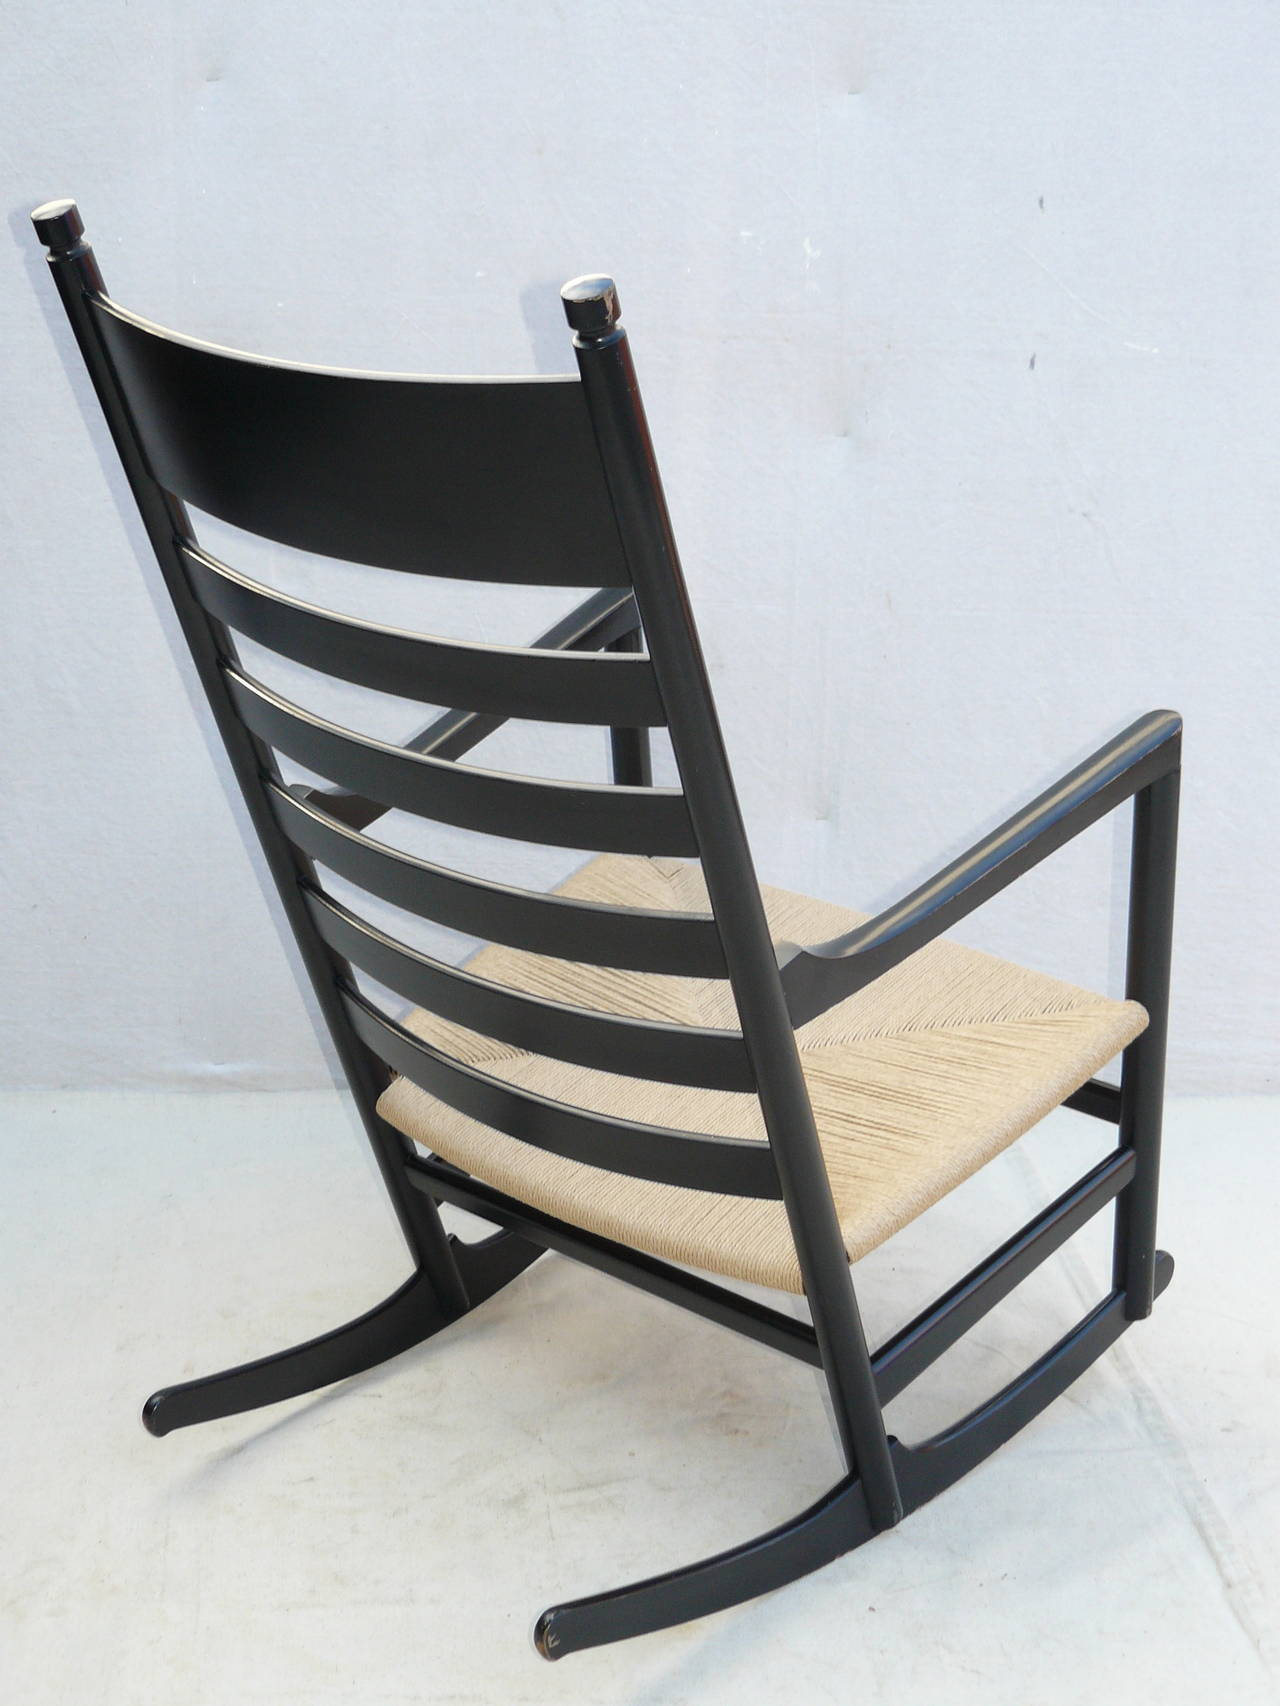 Shaker Rocking Chairs Concept Home & Interior Design